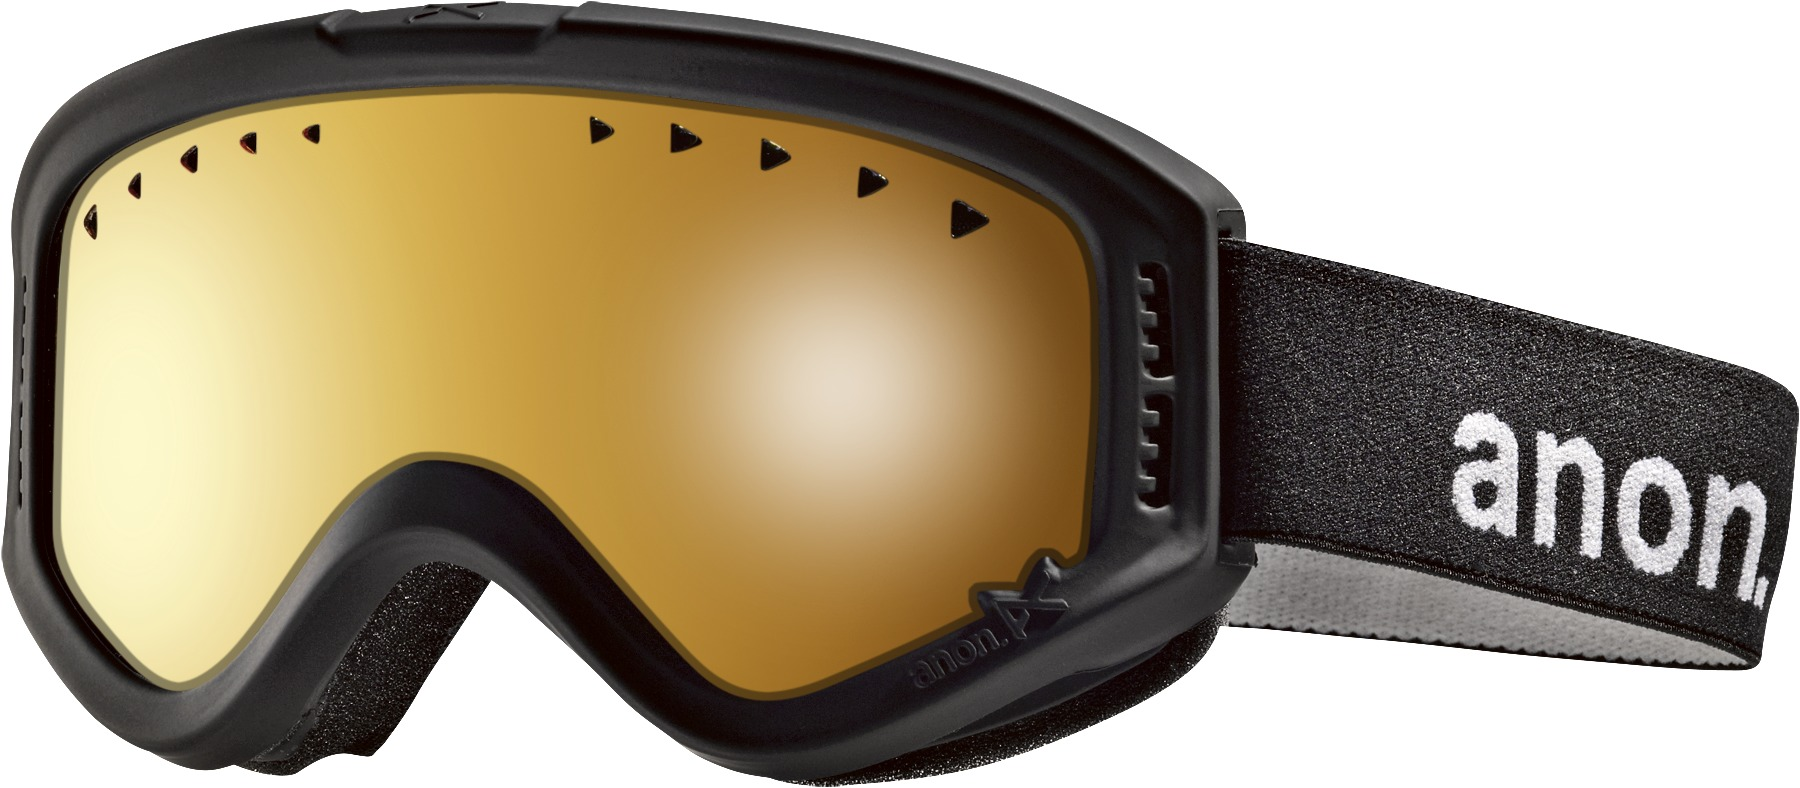 Gogle Anon Tracker (Black/ Amber)